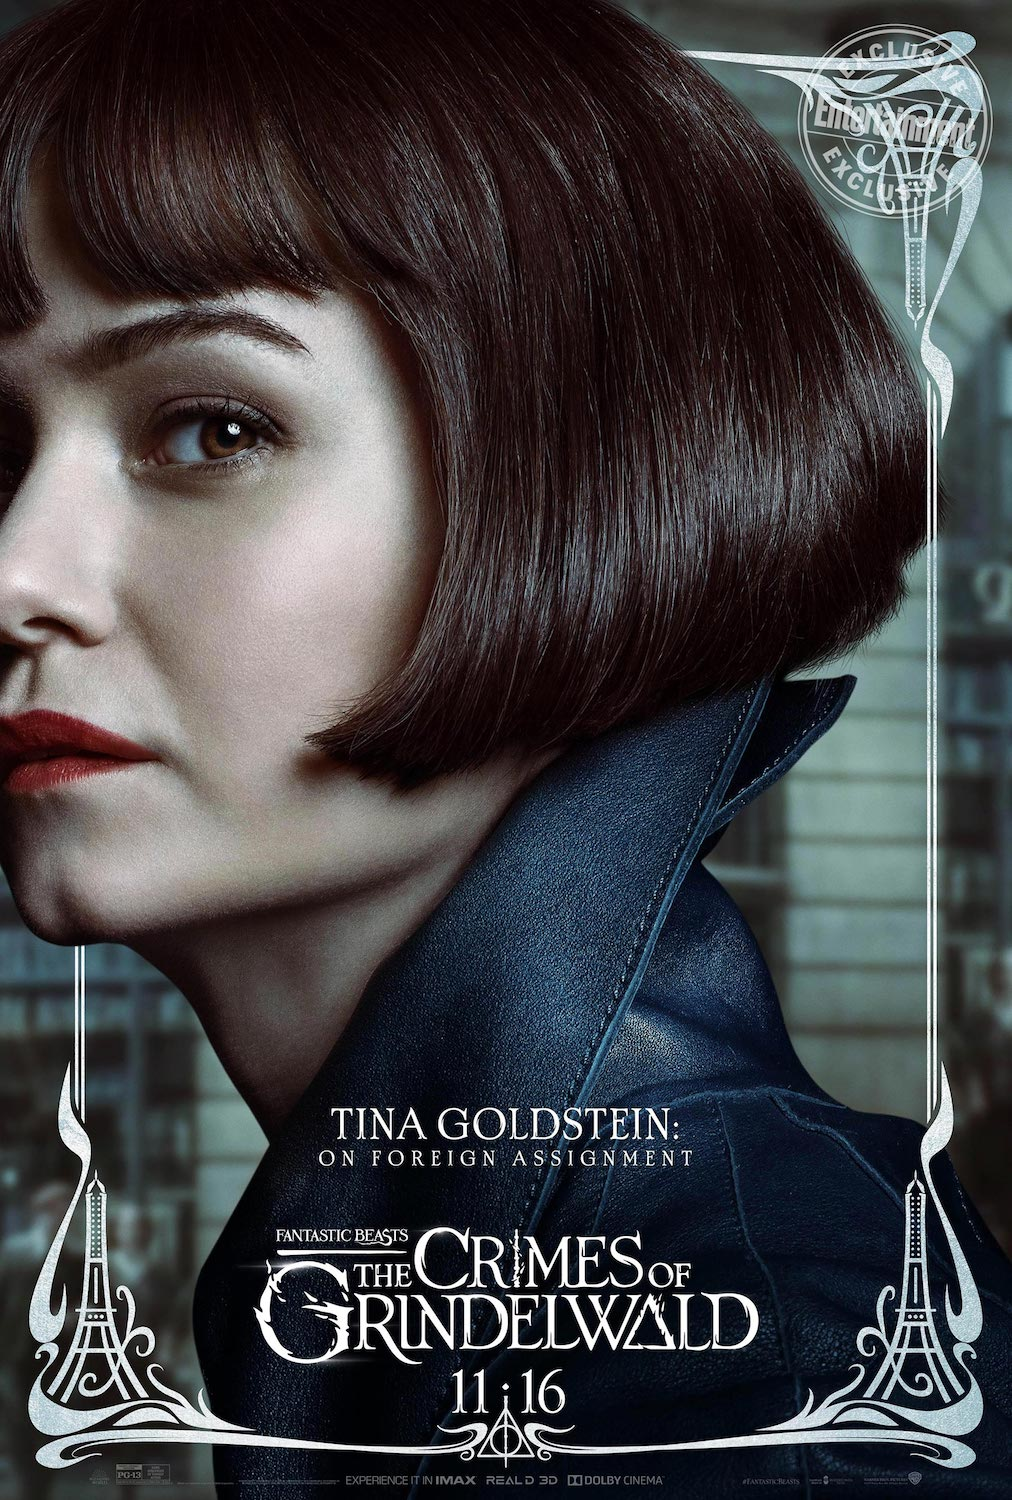 Tina has regained her position as an Auror, but where has she been sent on her foreign assignment?